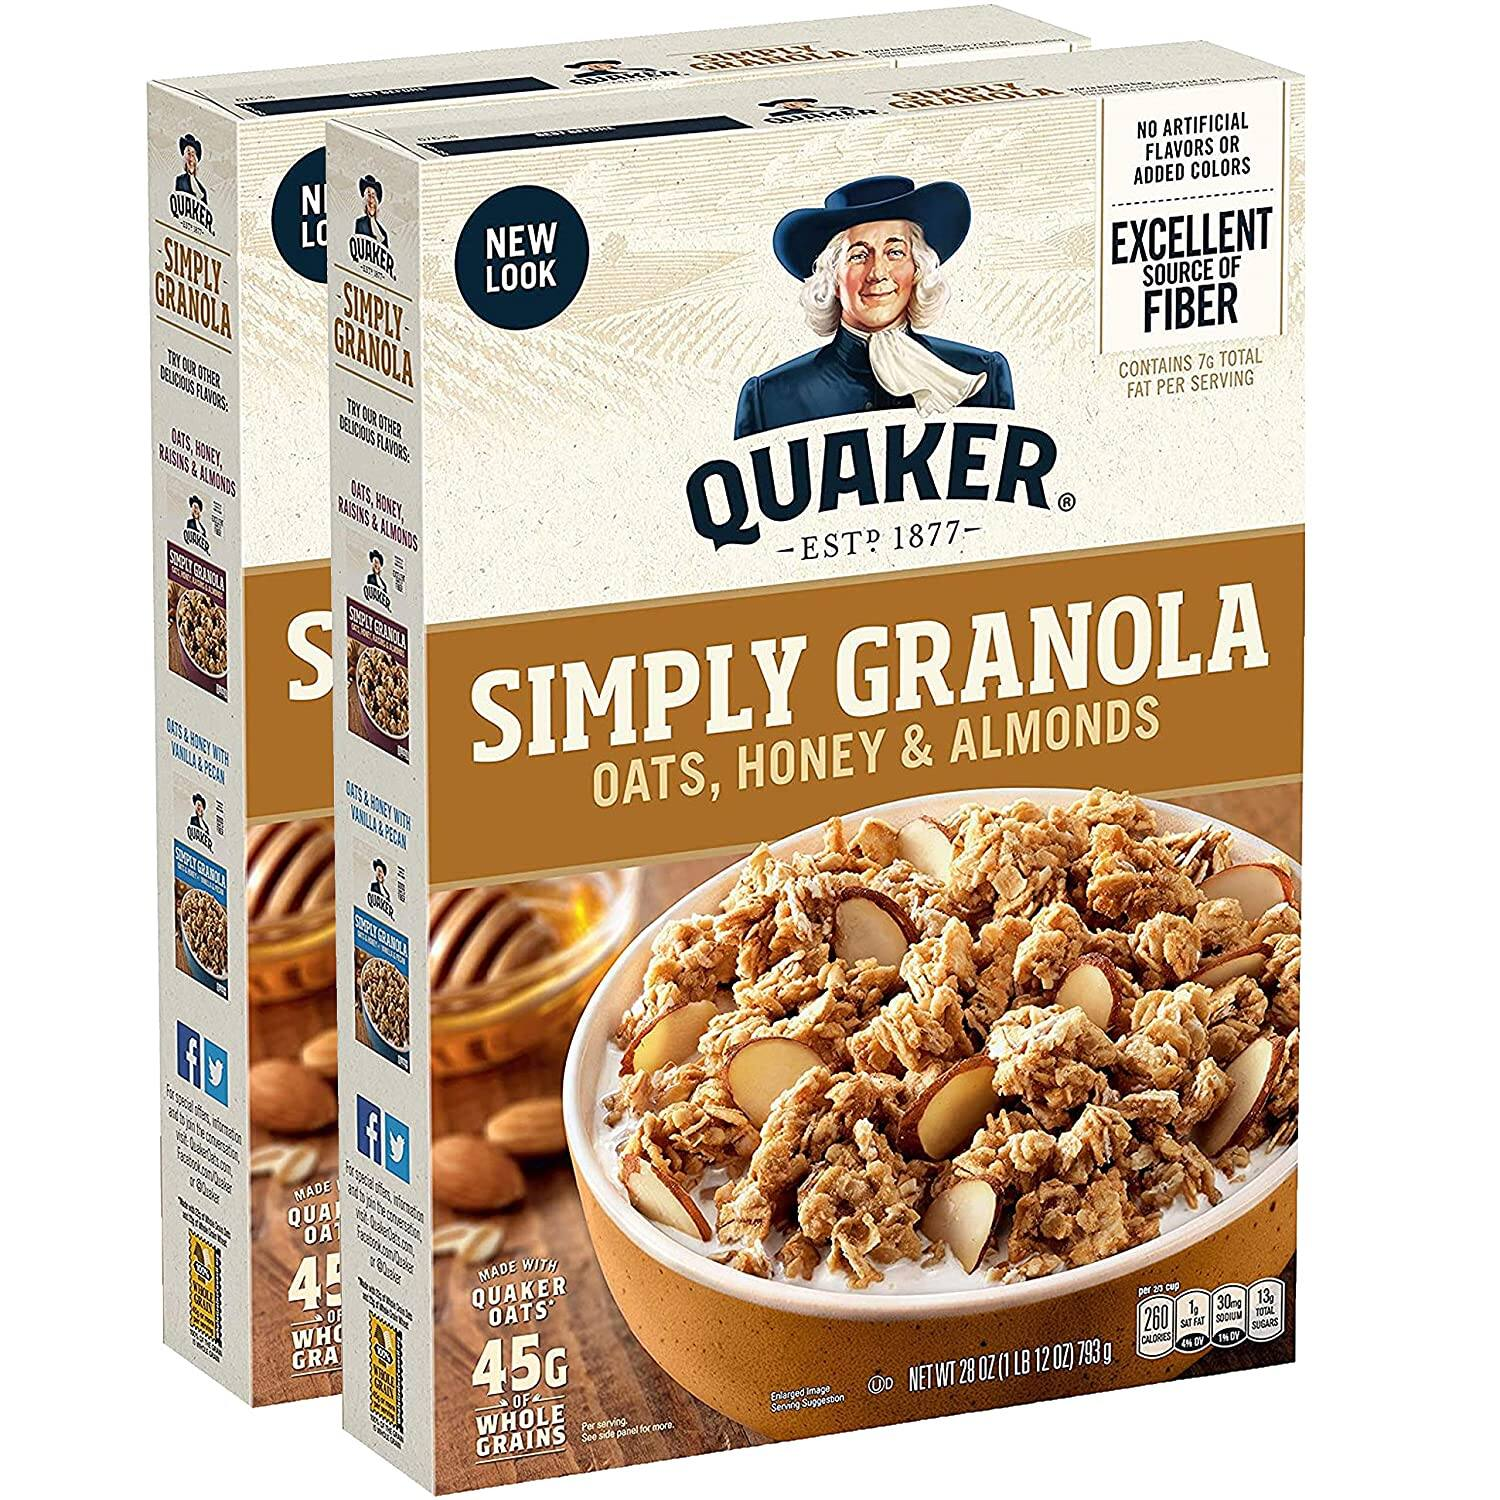 2-Pack 28-Oz Quaker Simply Granola Oats (Honey & Almonds)